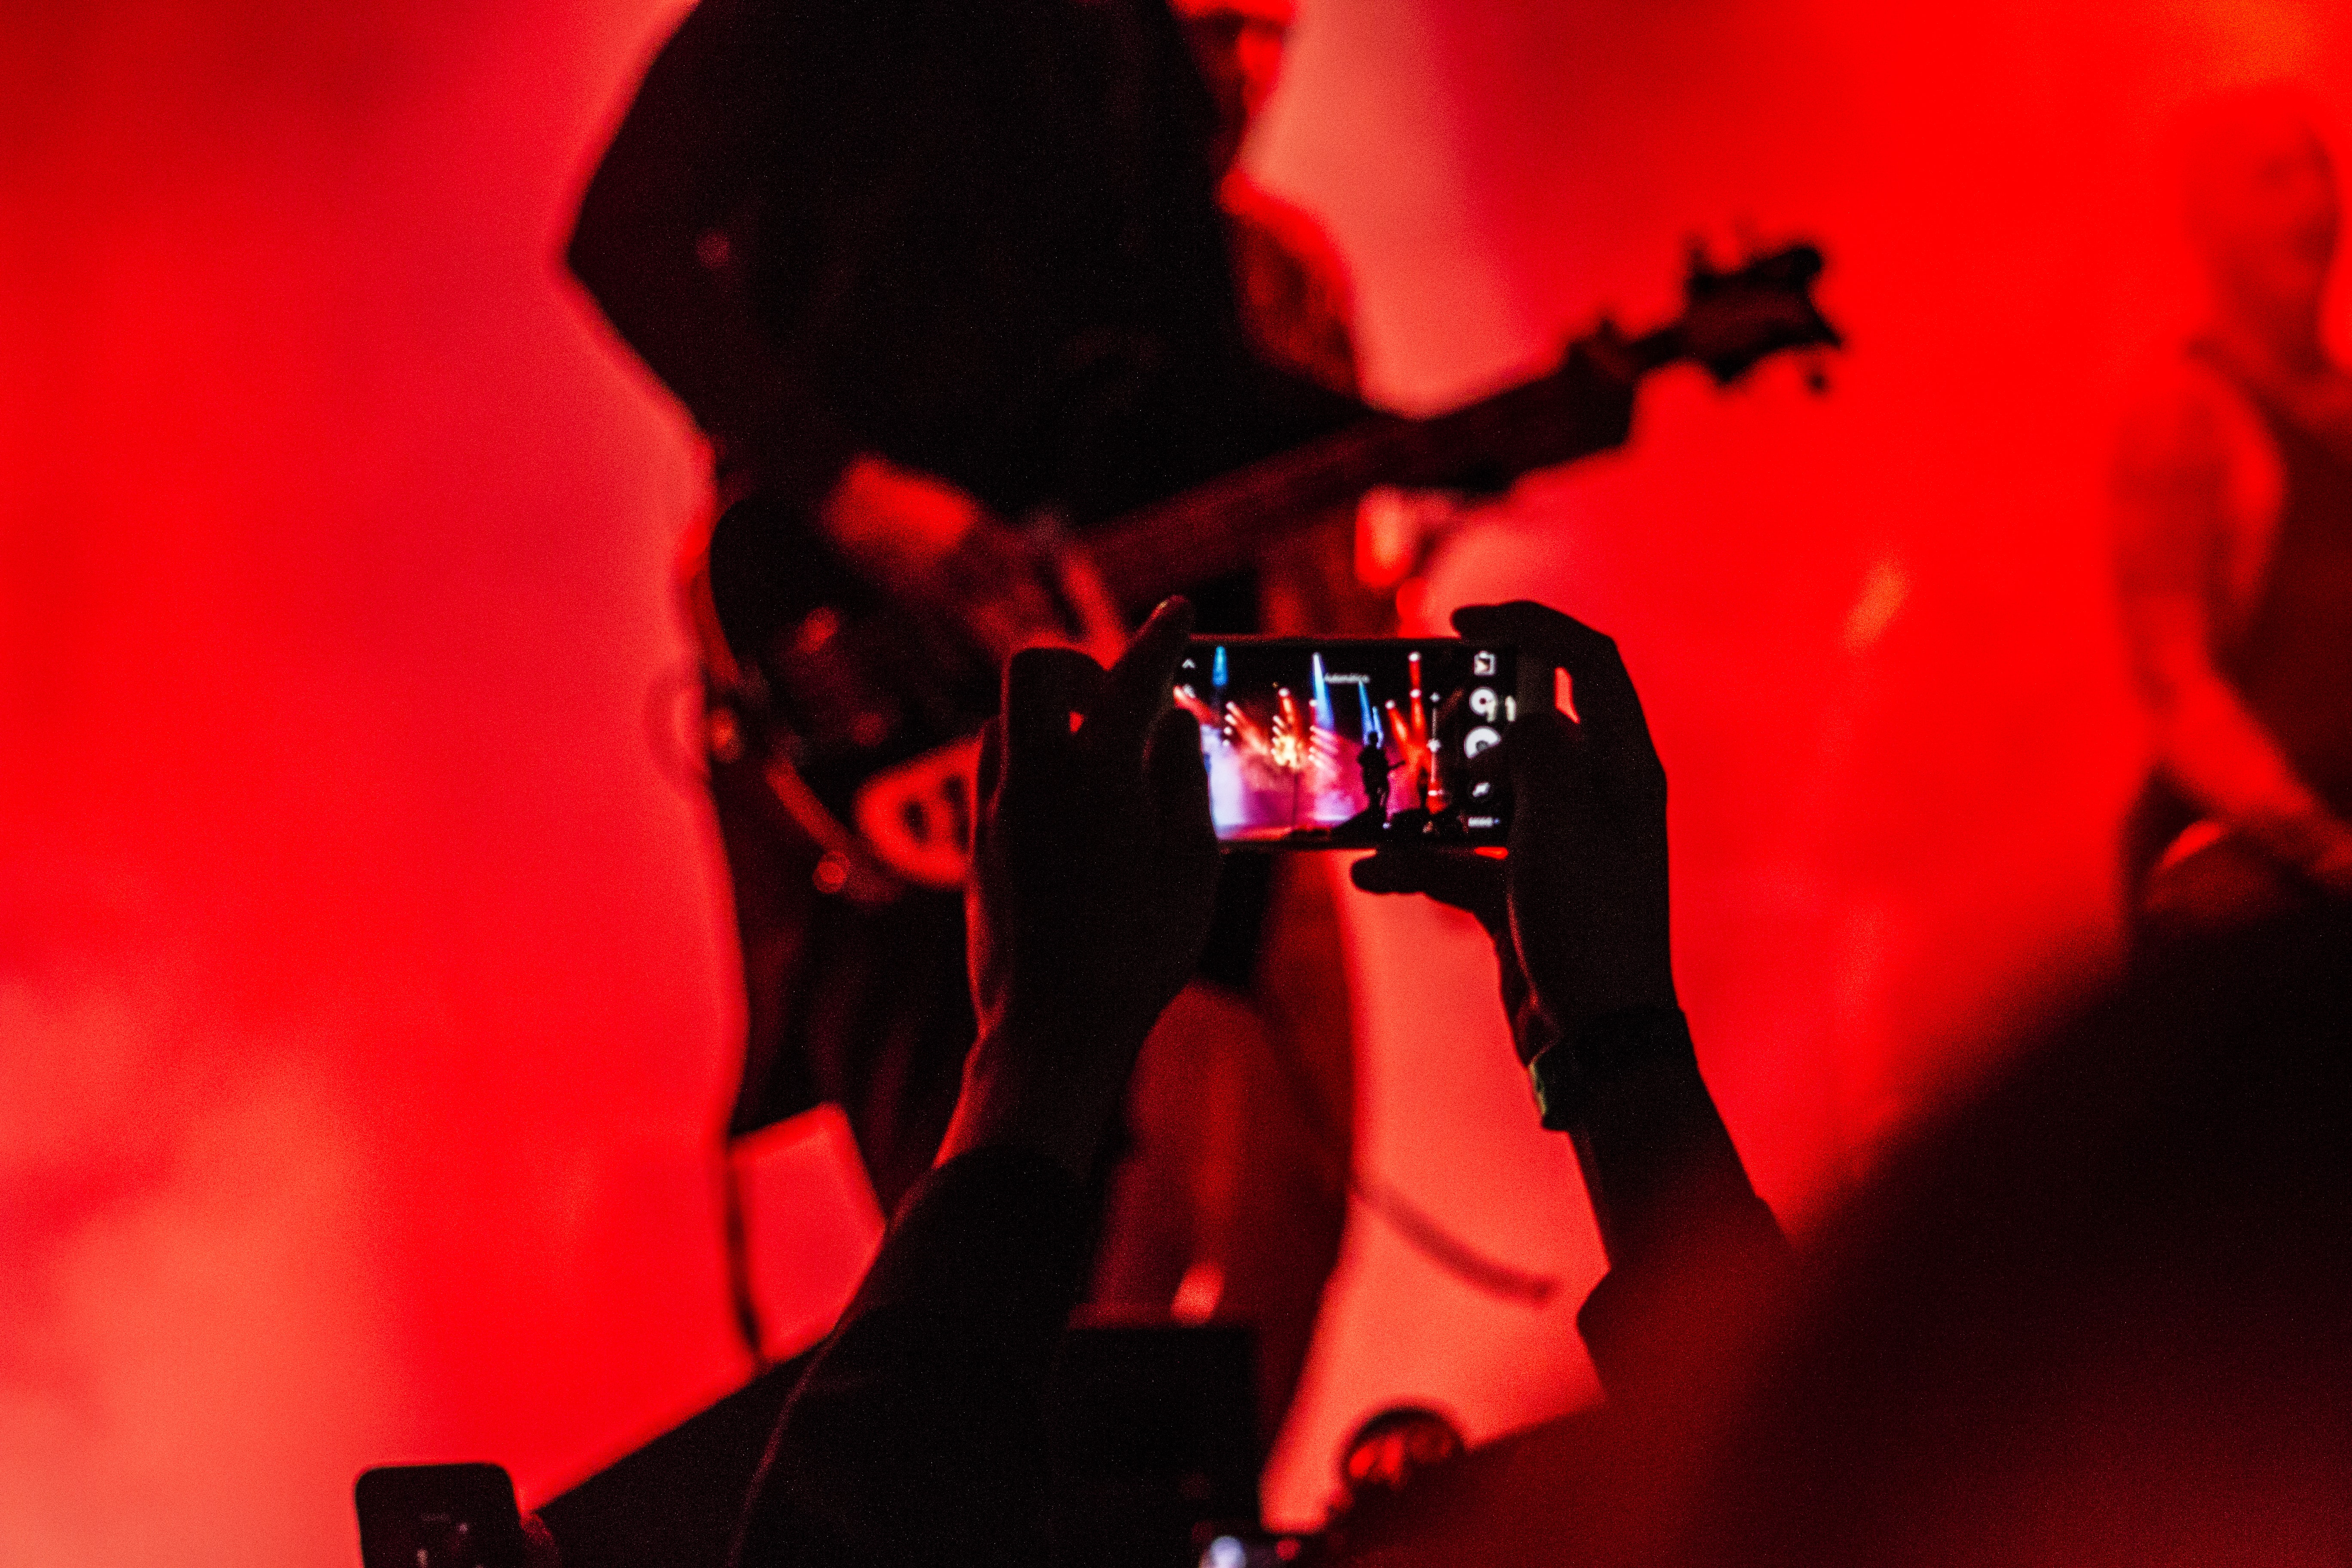 A guitarist performs on stage in red light while an audience member records a concert on their phone